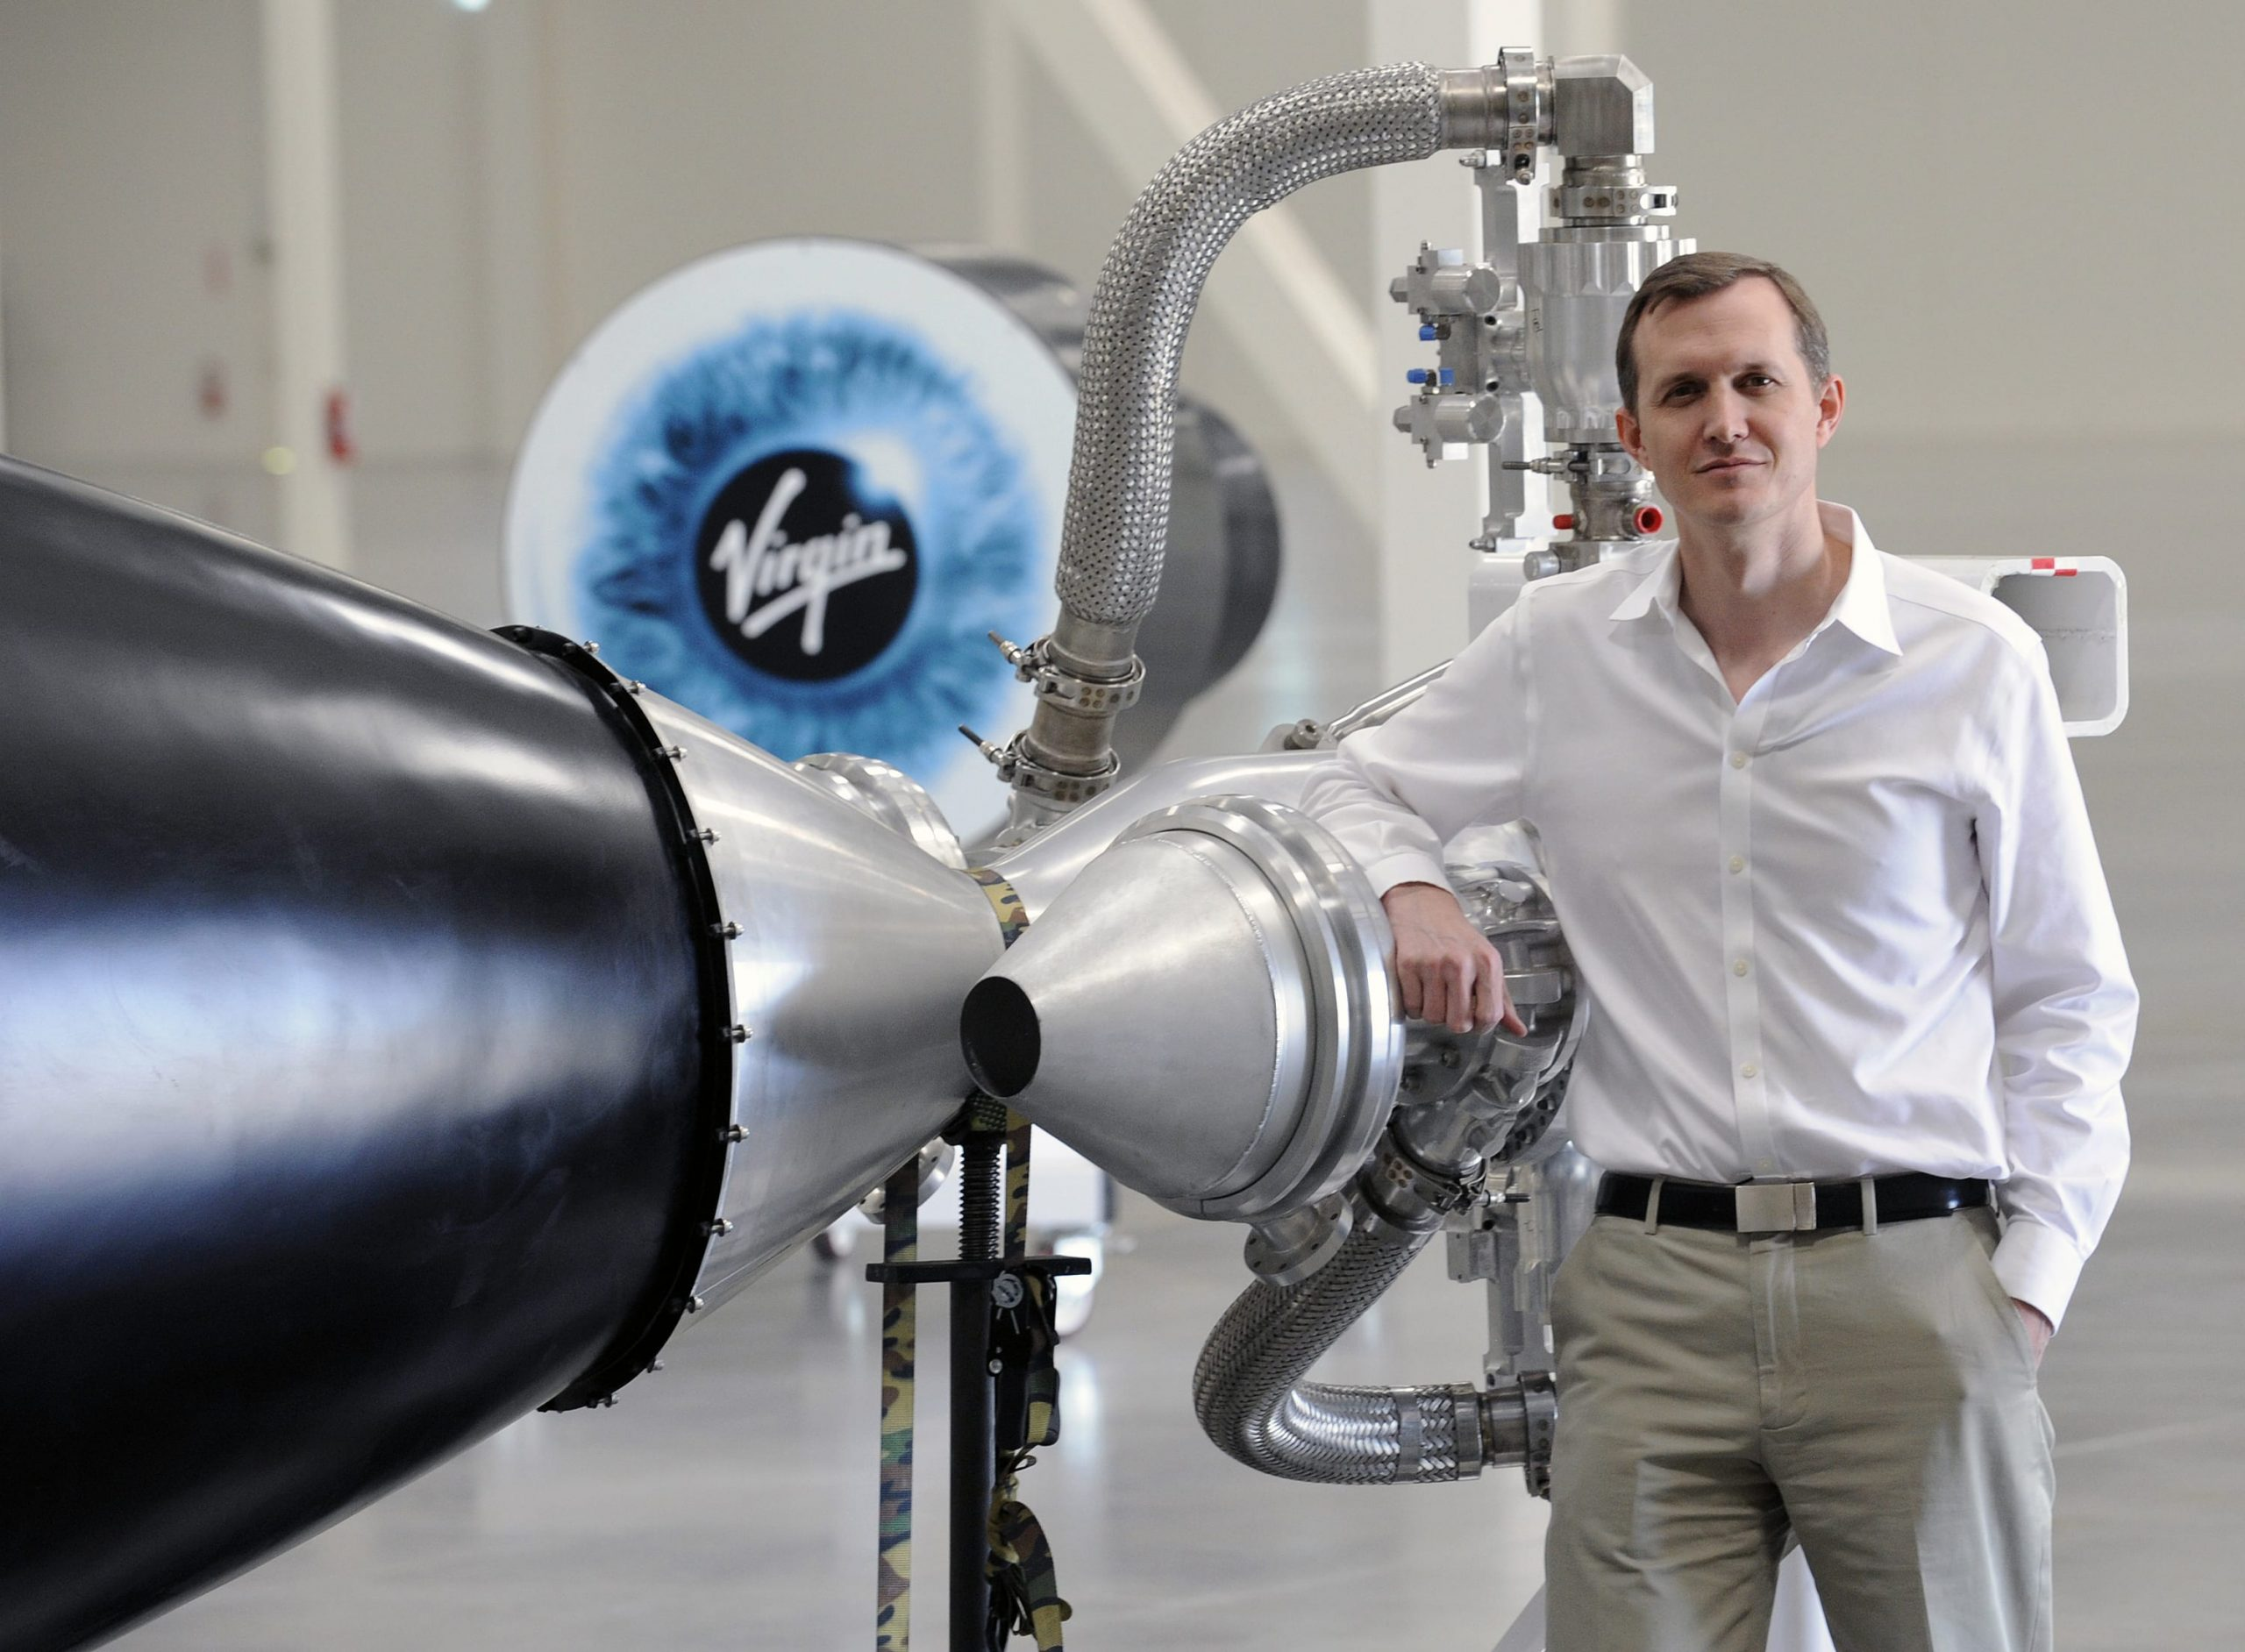 Virgin Galactic CEO George Whitesides on the path to space tourism